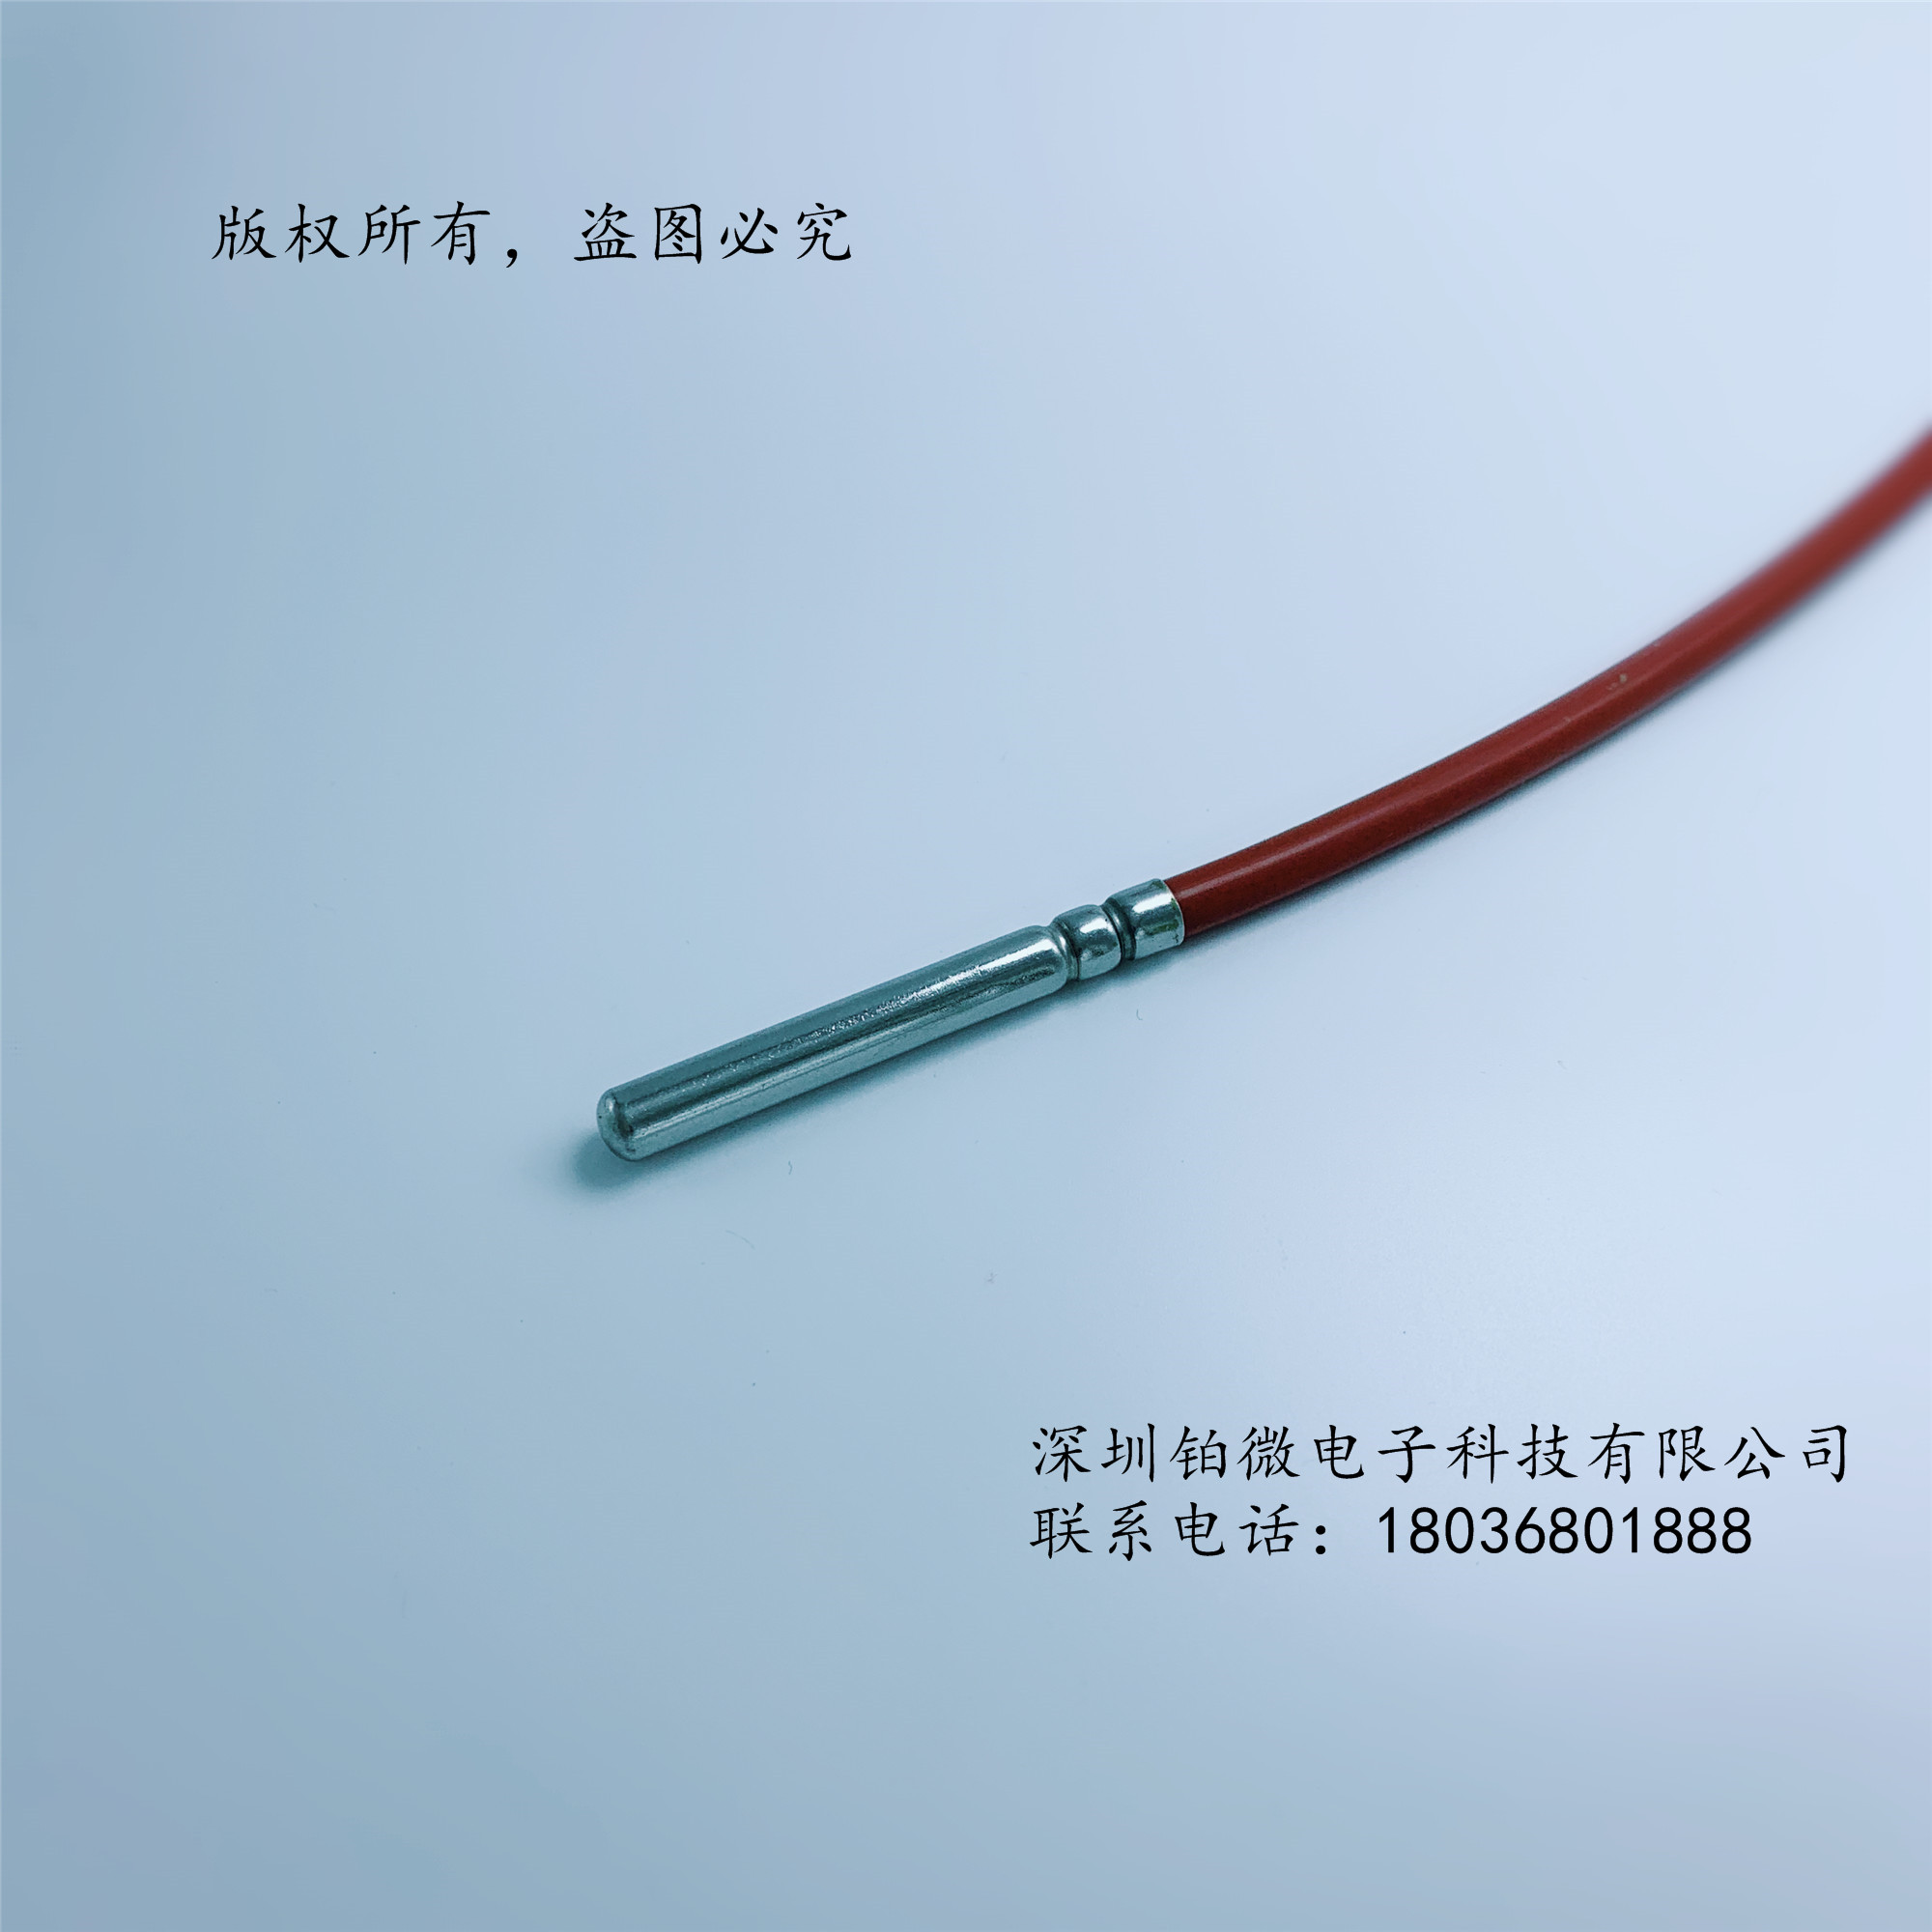 DS18B20 Temperature Sensor Water Temperature Probe Stainless Steel Package Waterproof Silicone Wire